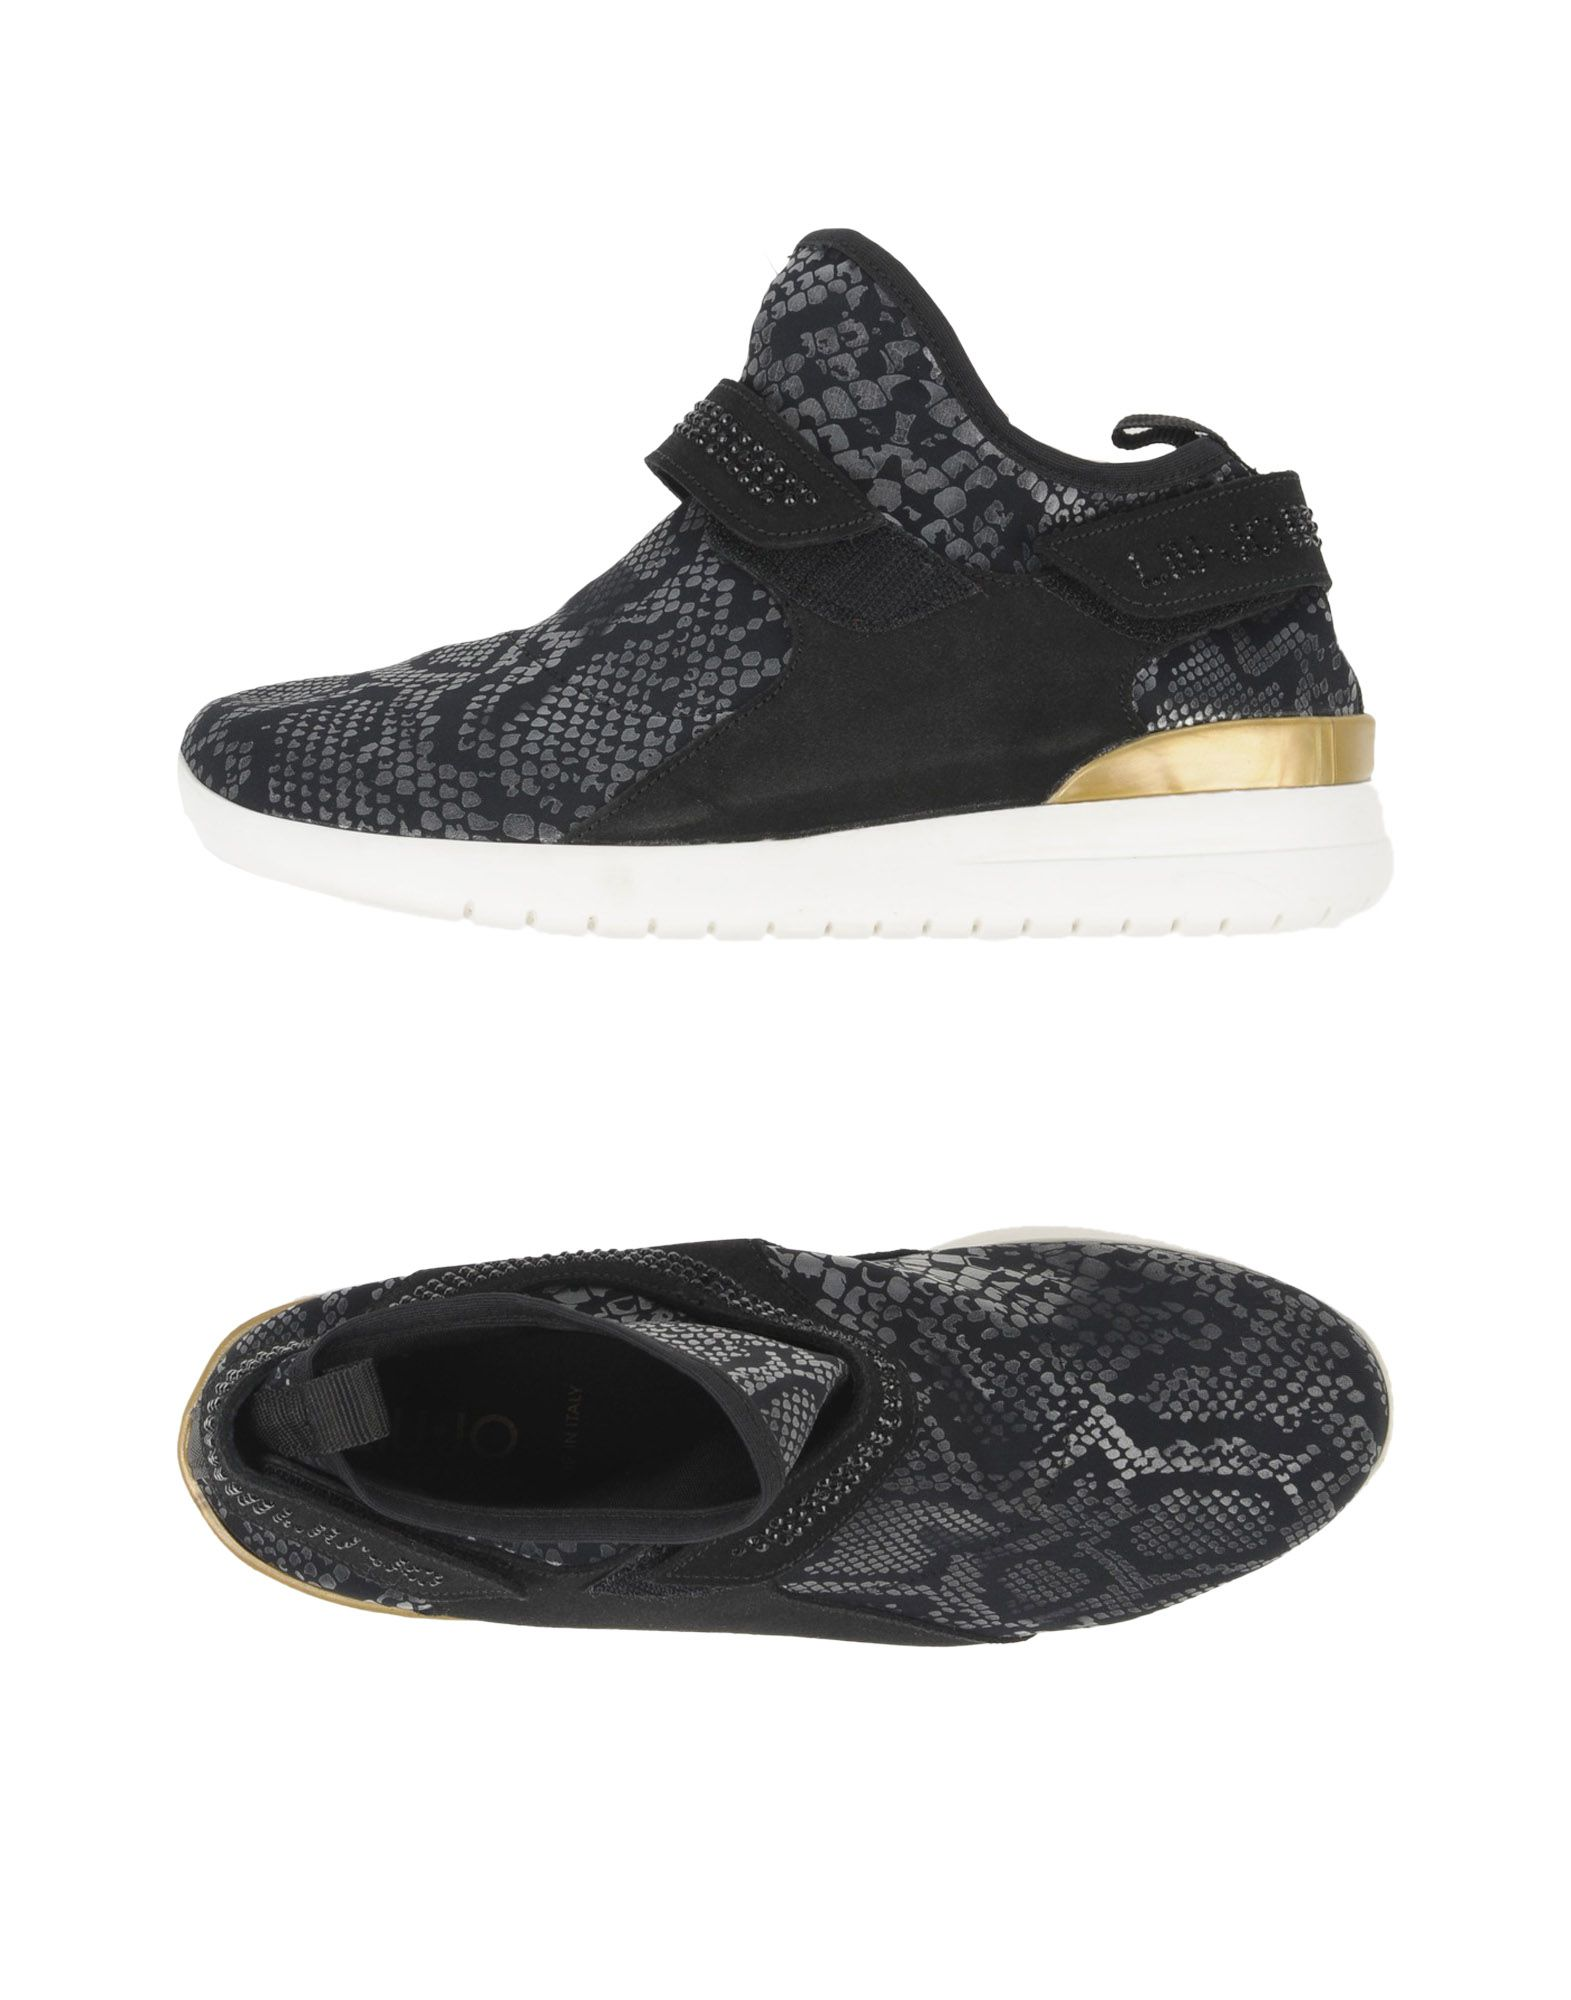 Baskets Liu •Jo Shoes Femme - Baskets Liu •Jo Shoes Noir Réduction de prix saisonnier, remise